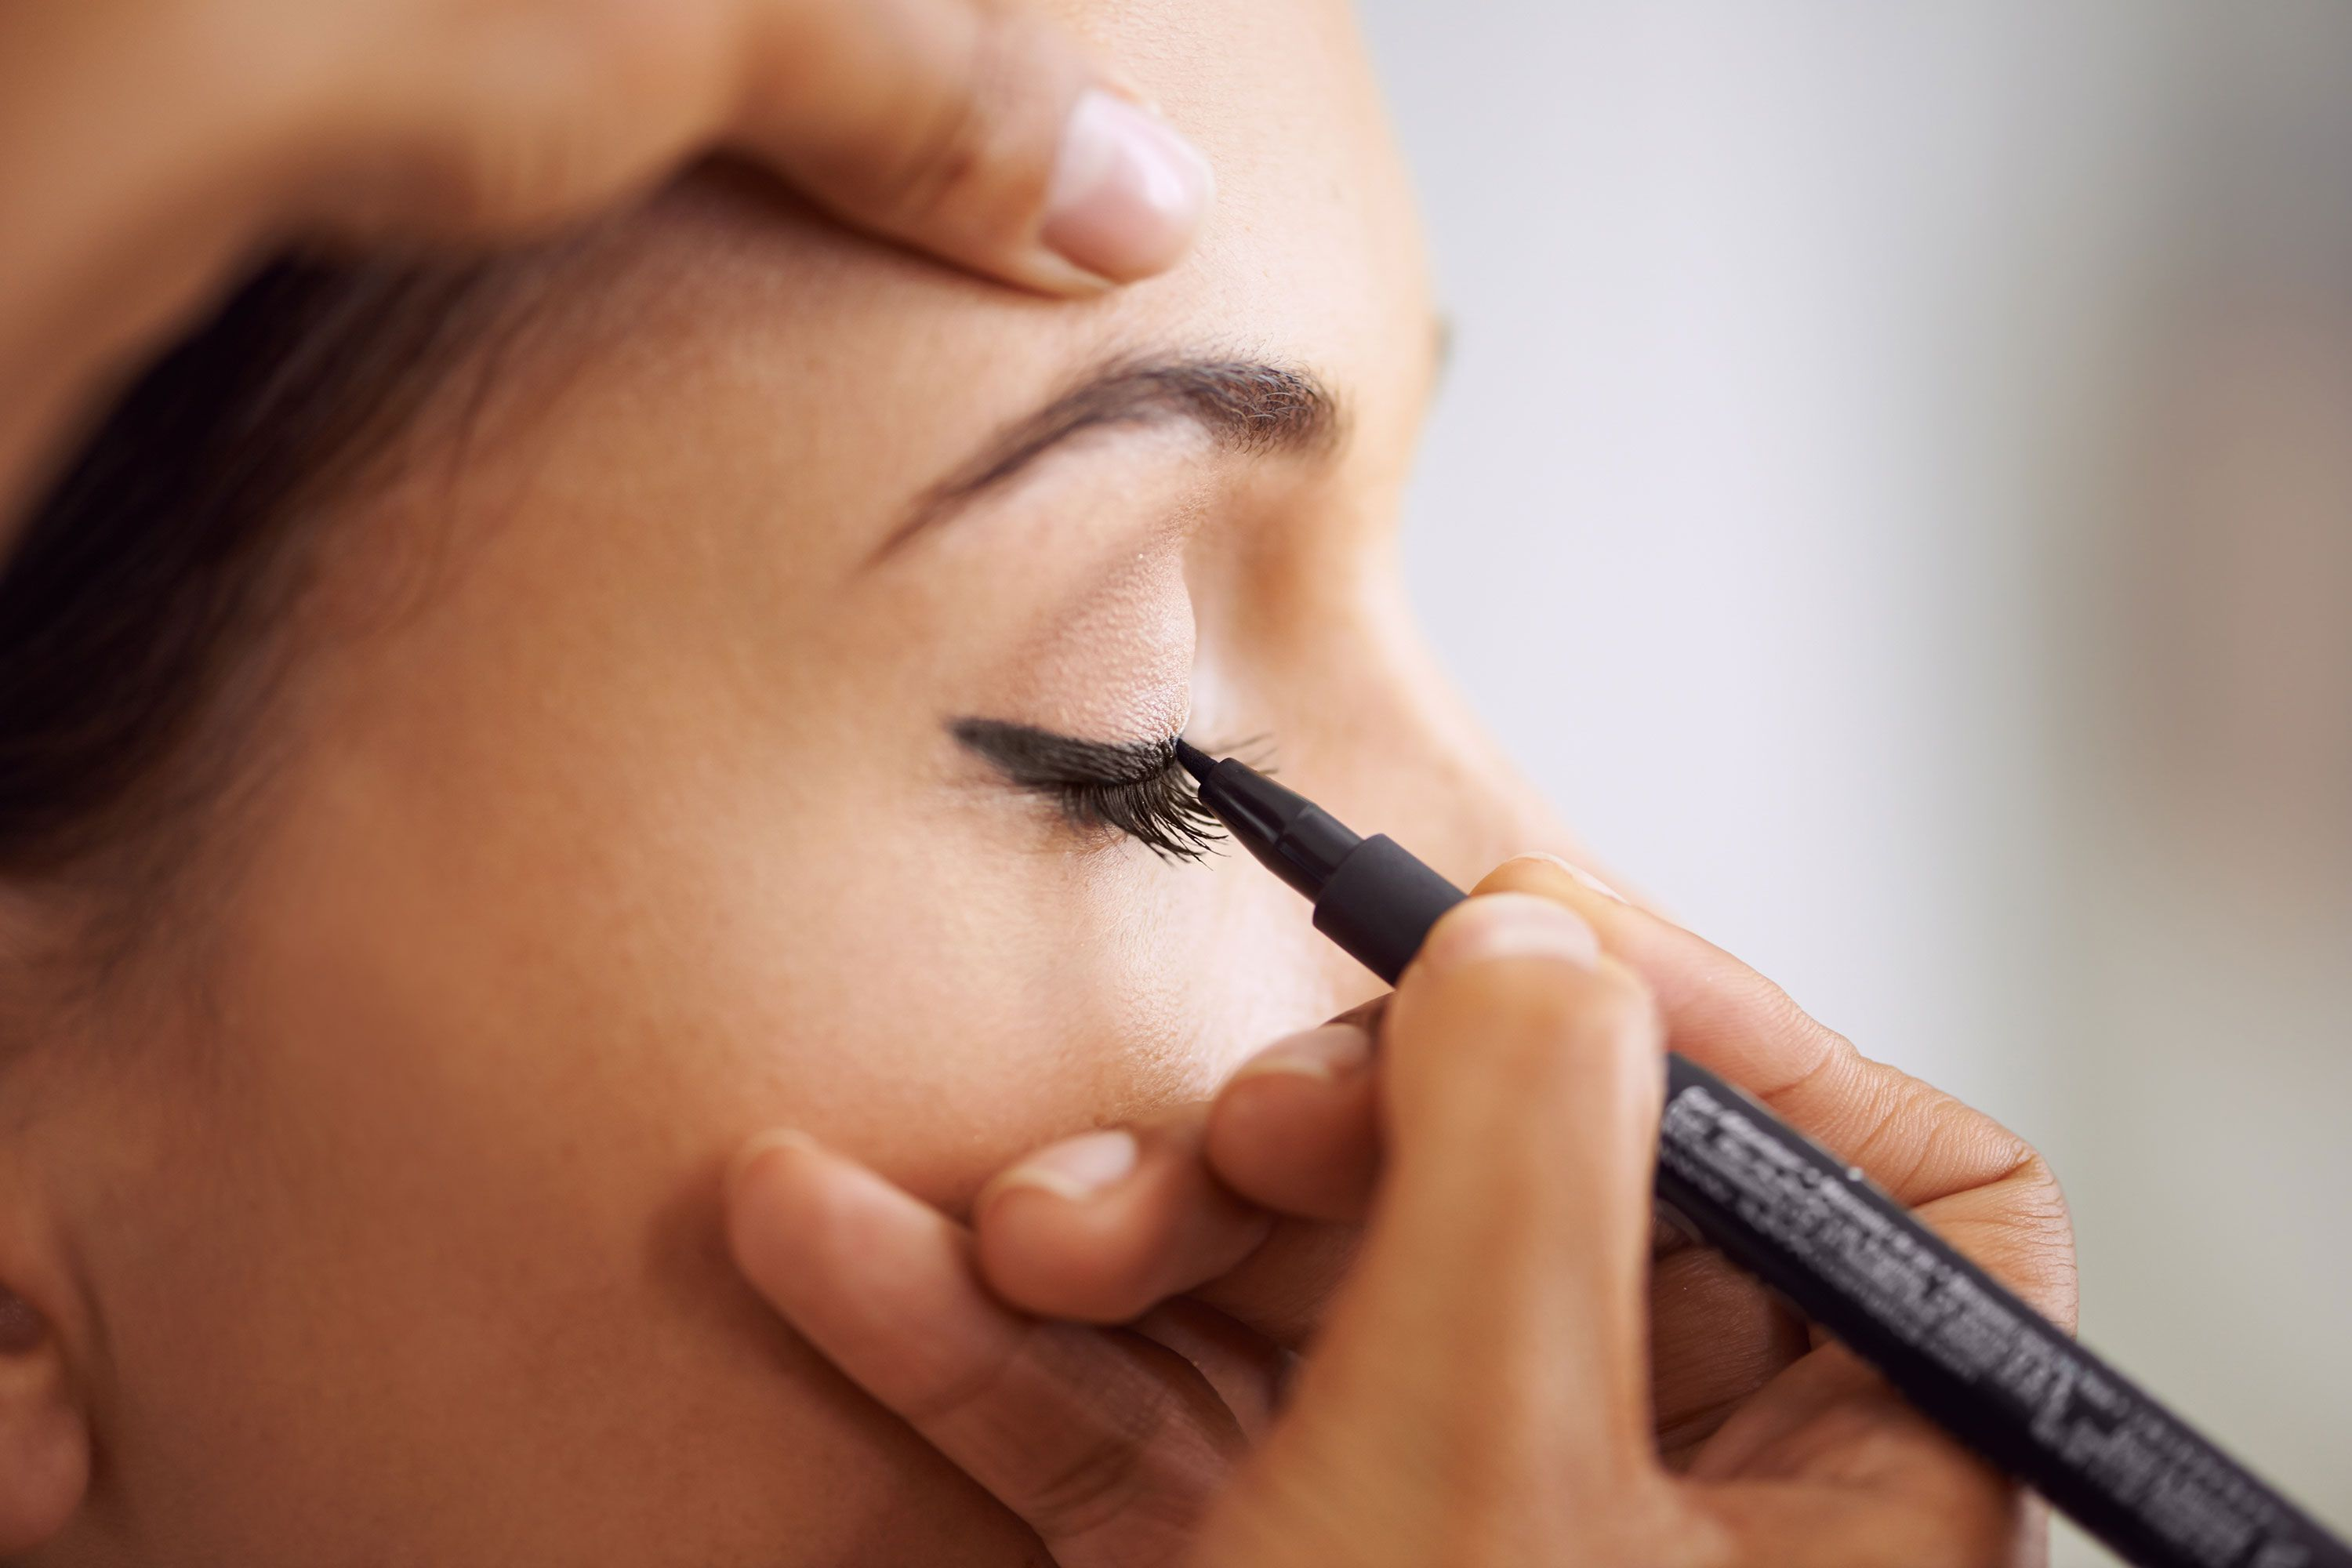 Three key make-up tricks for looking younger